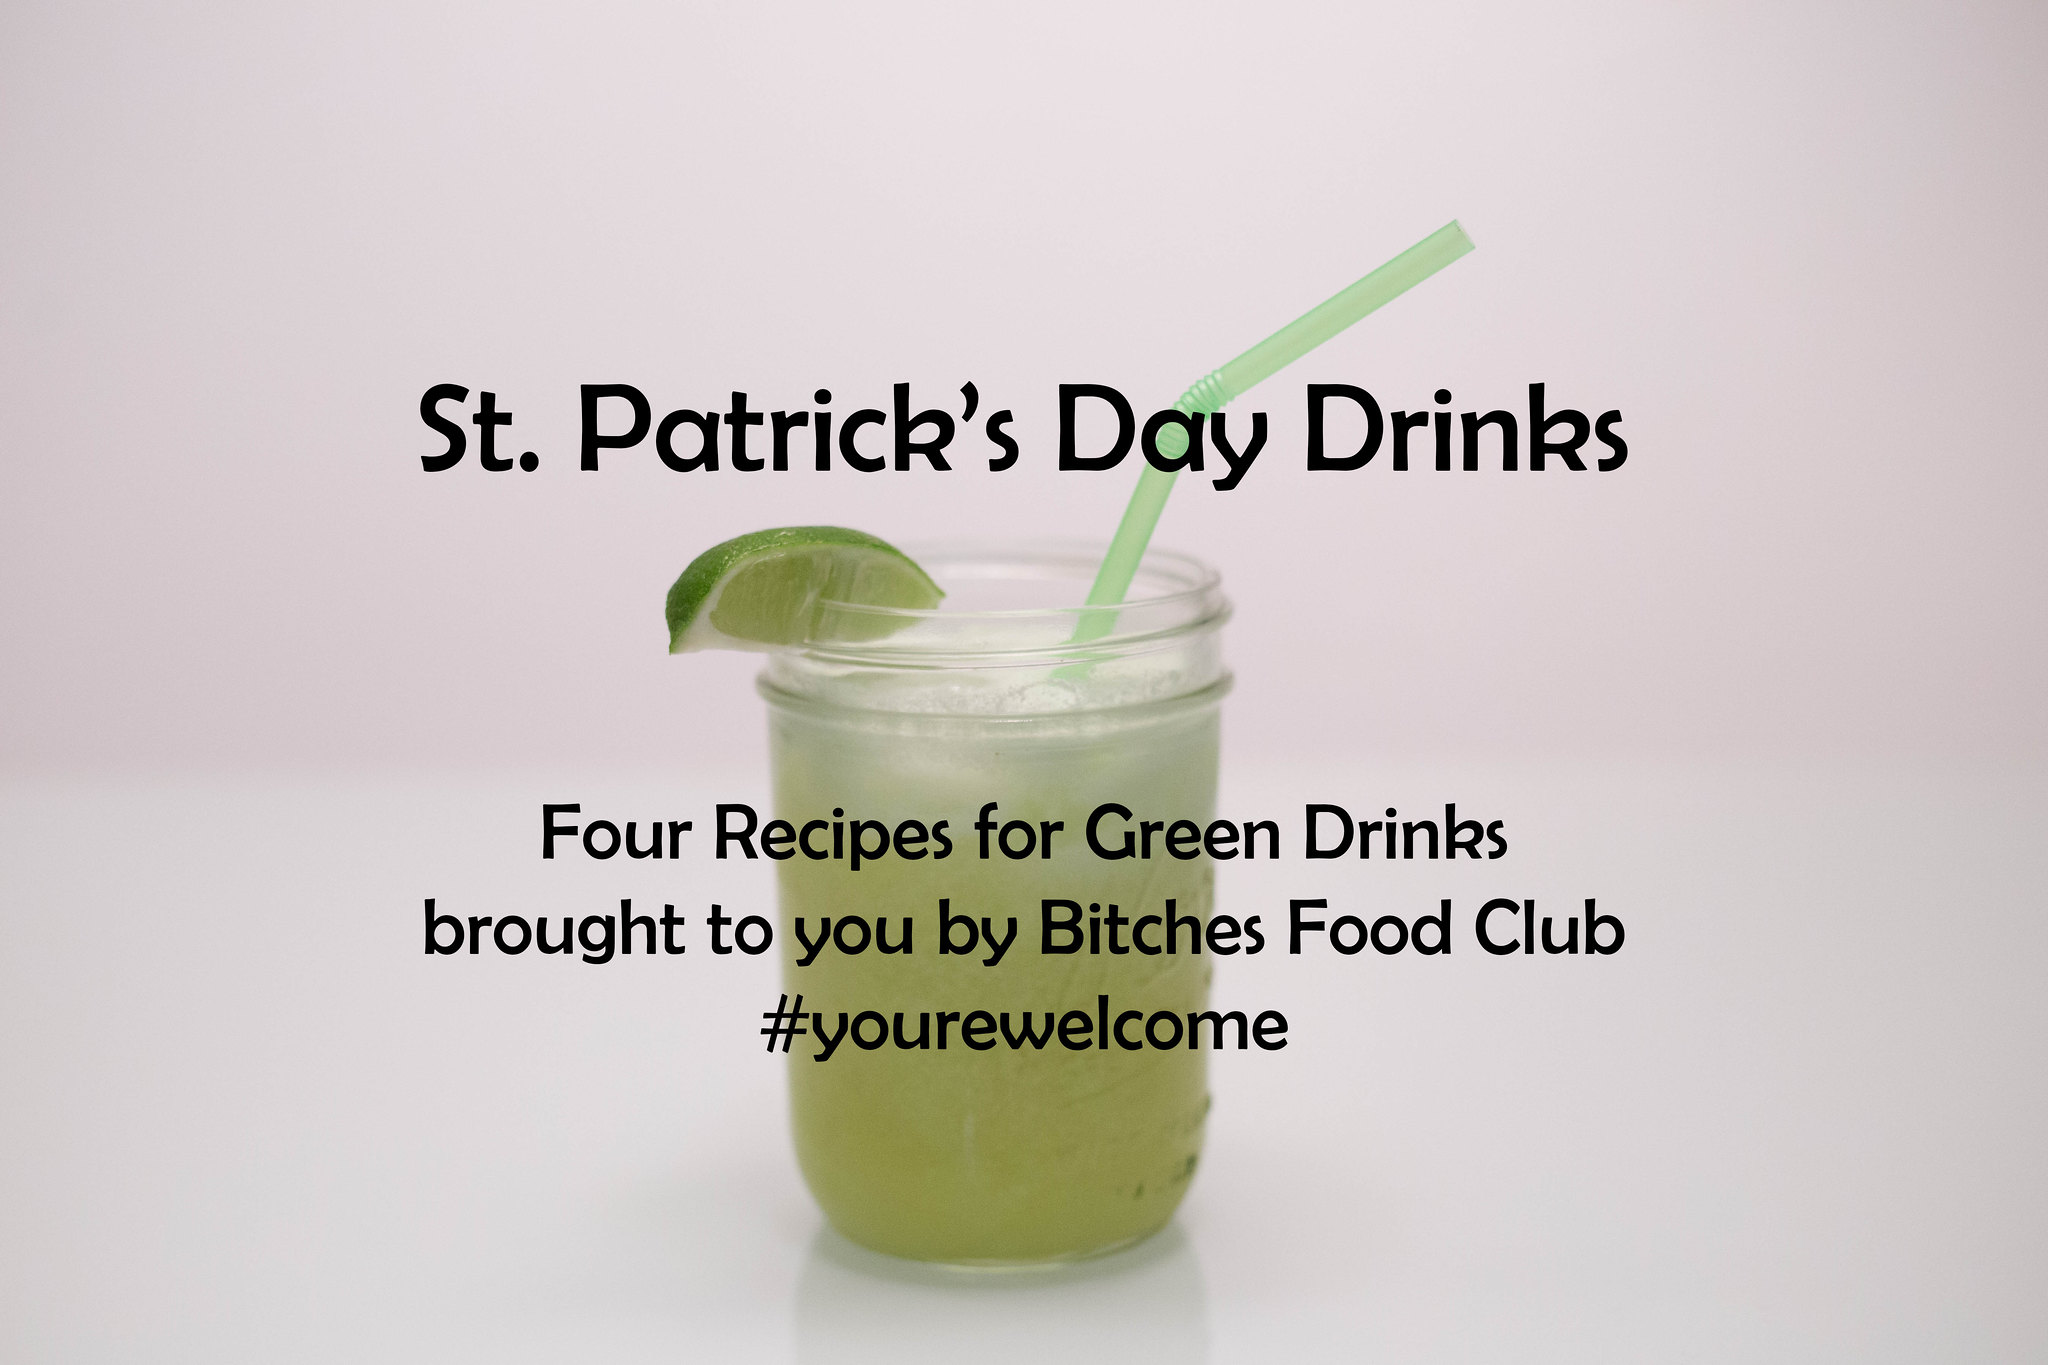 St. Patrick's Day Drinks 2017